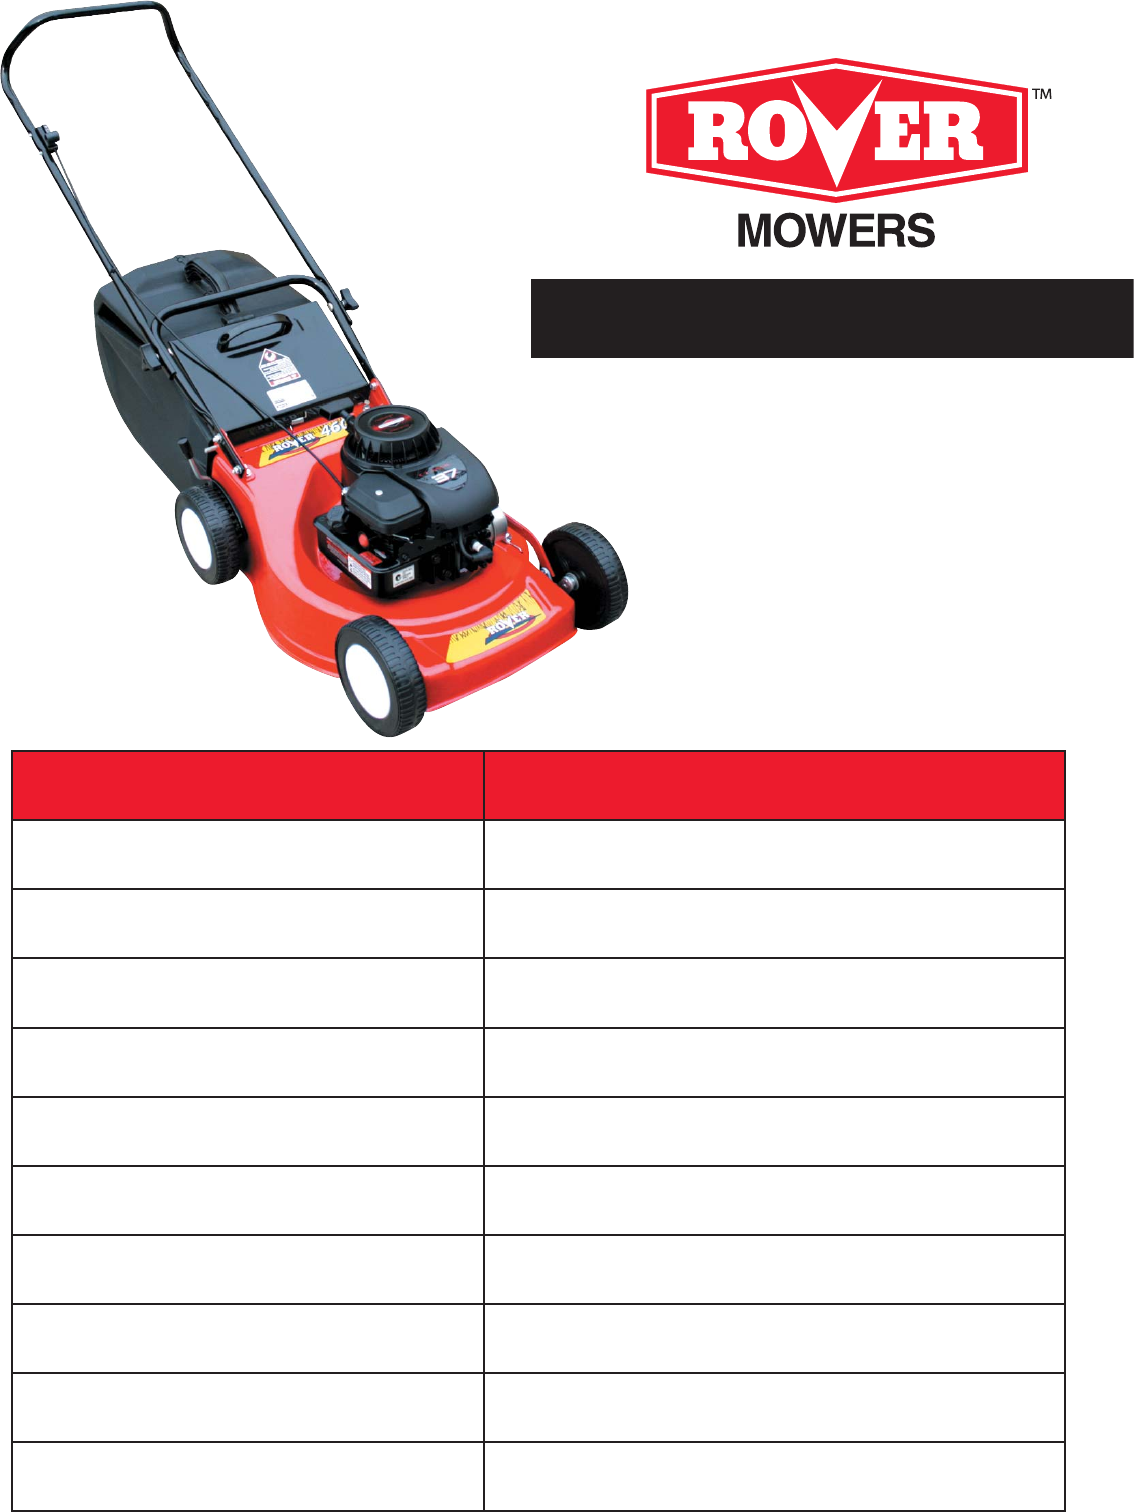 rover lawn mower 11024 user guide manualsonline com rh lawnandgarden manualsonline com rover lawn mower parts ebay rover lawn mower parts list